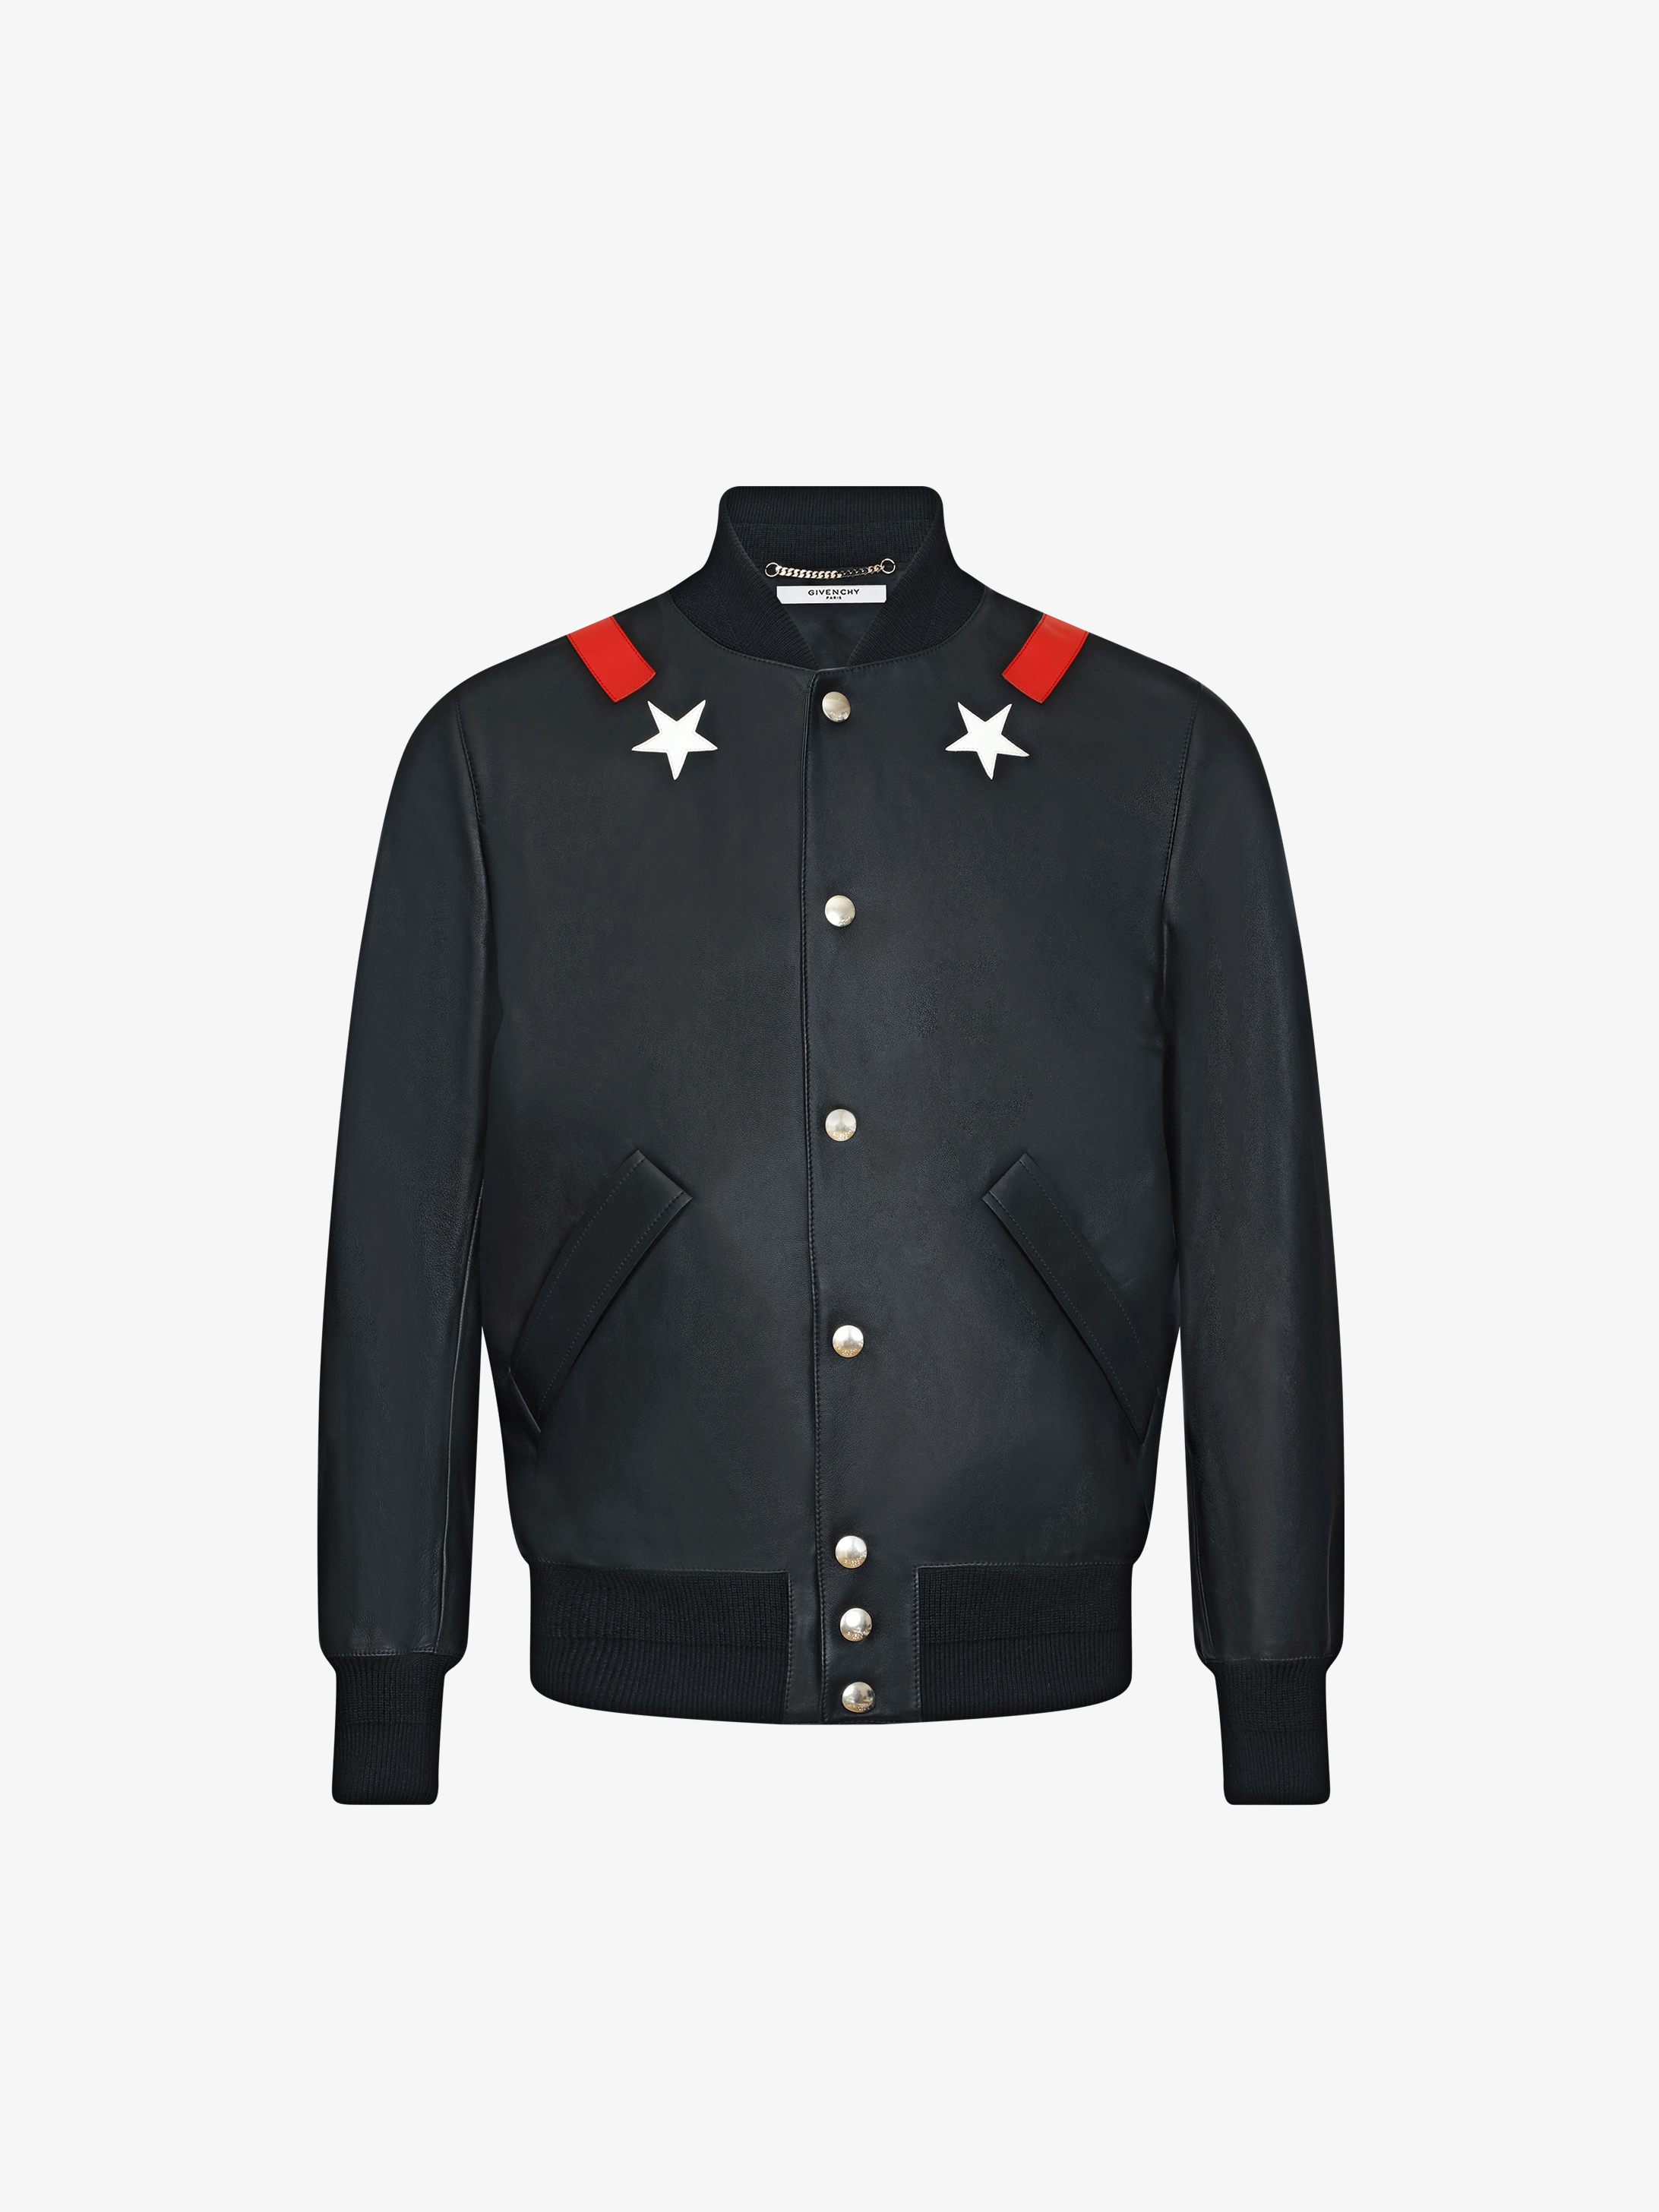 Star contrasting leather bomber jacket